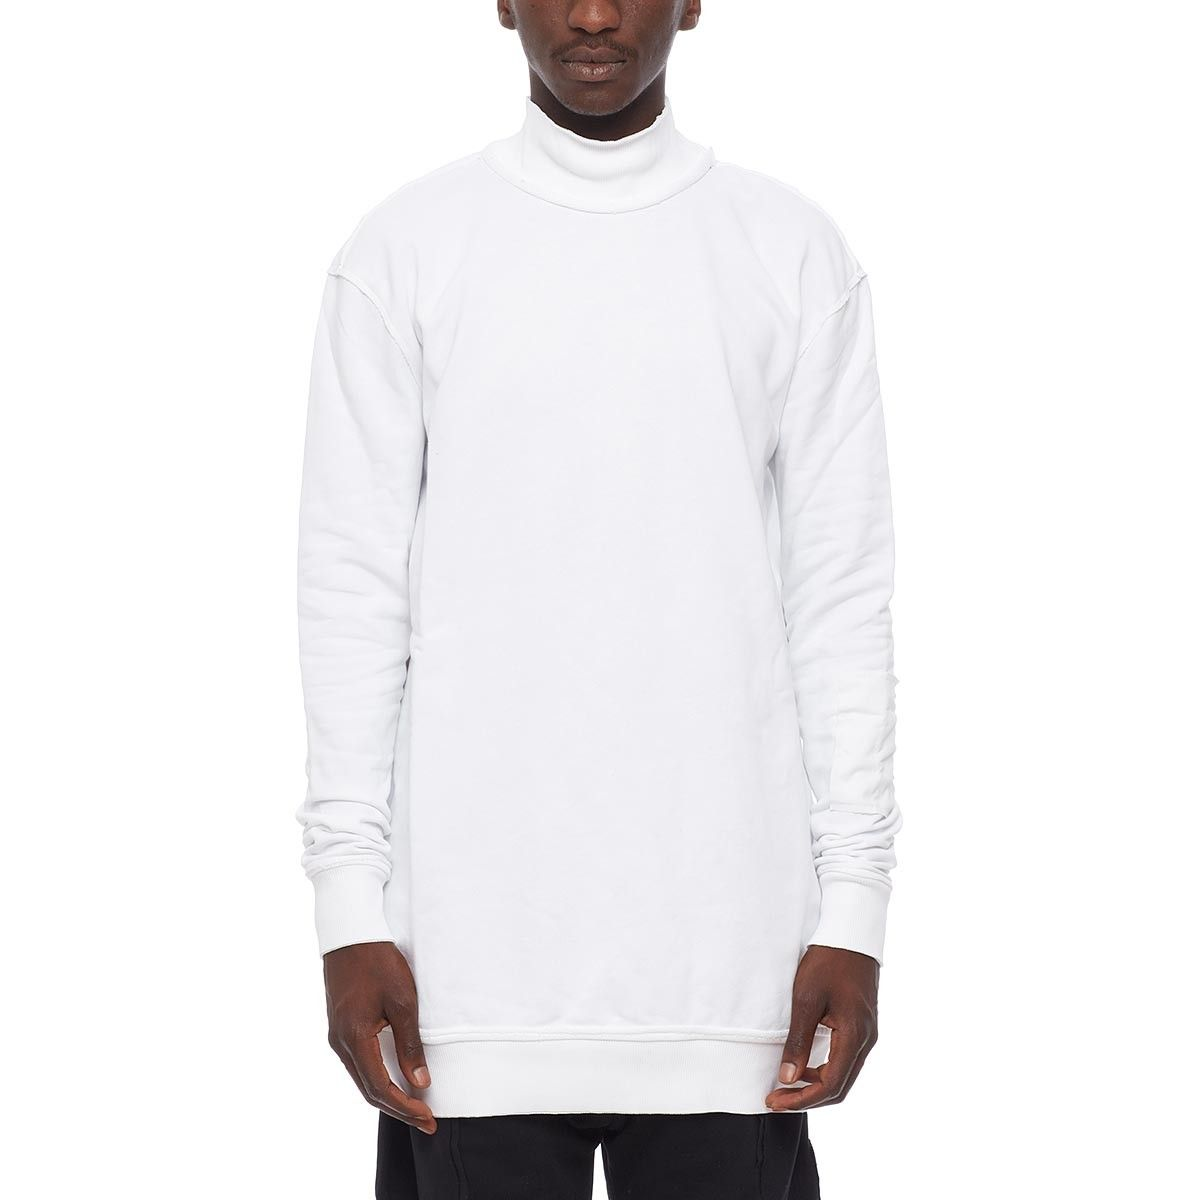 Wagner sweater from the F/W2016-17 Damir Doma collection in white